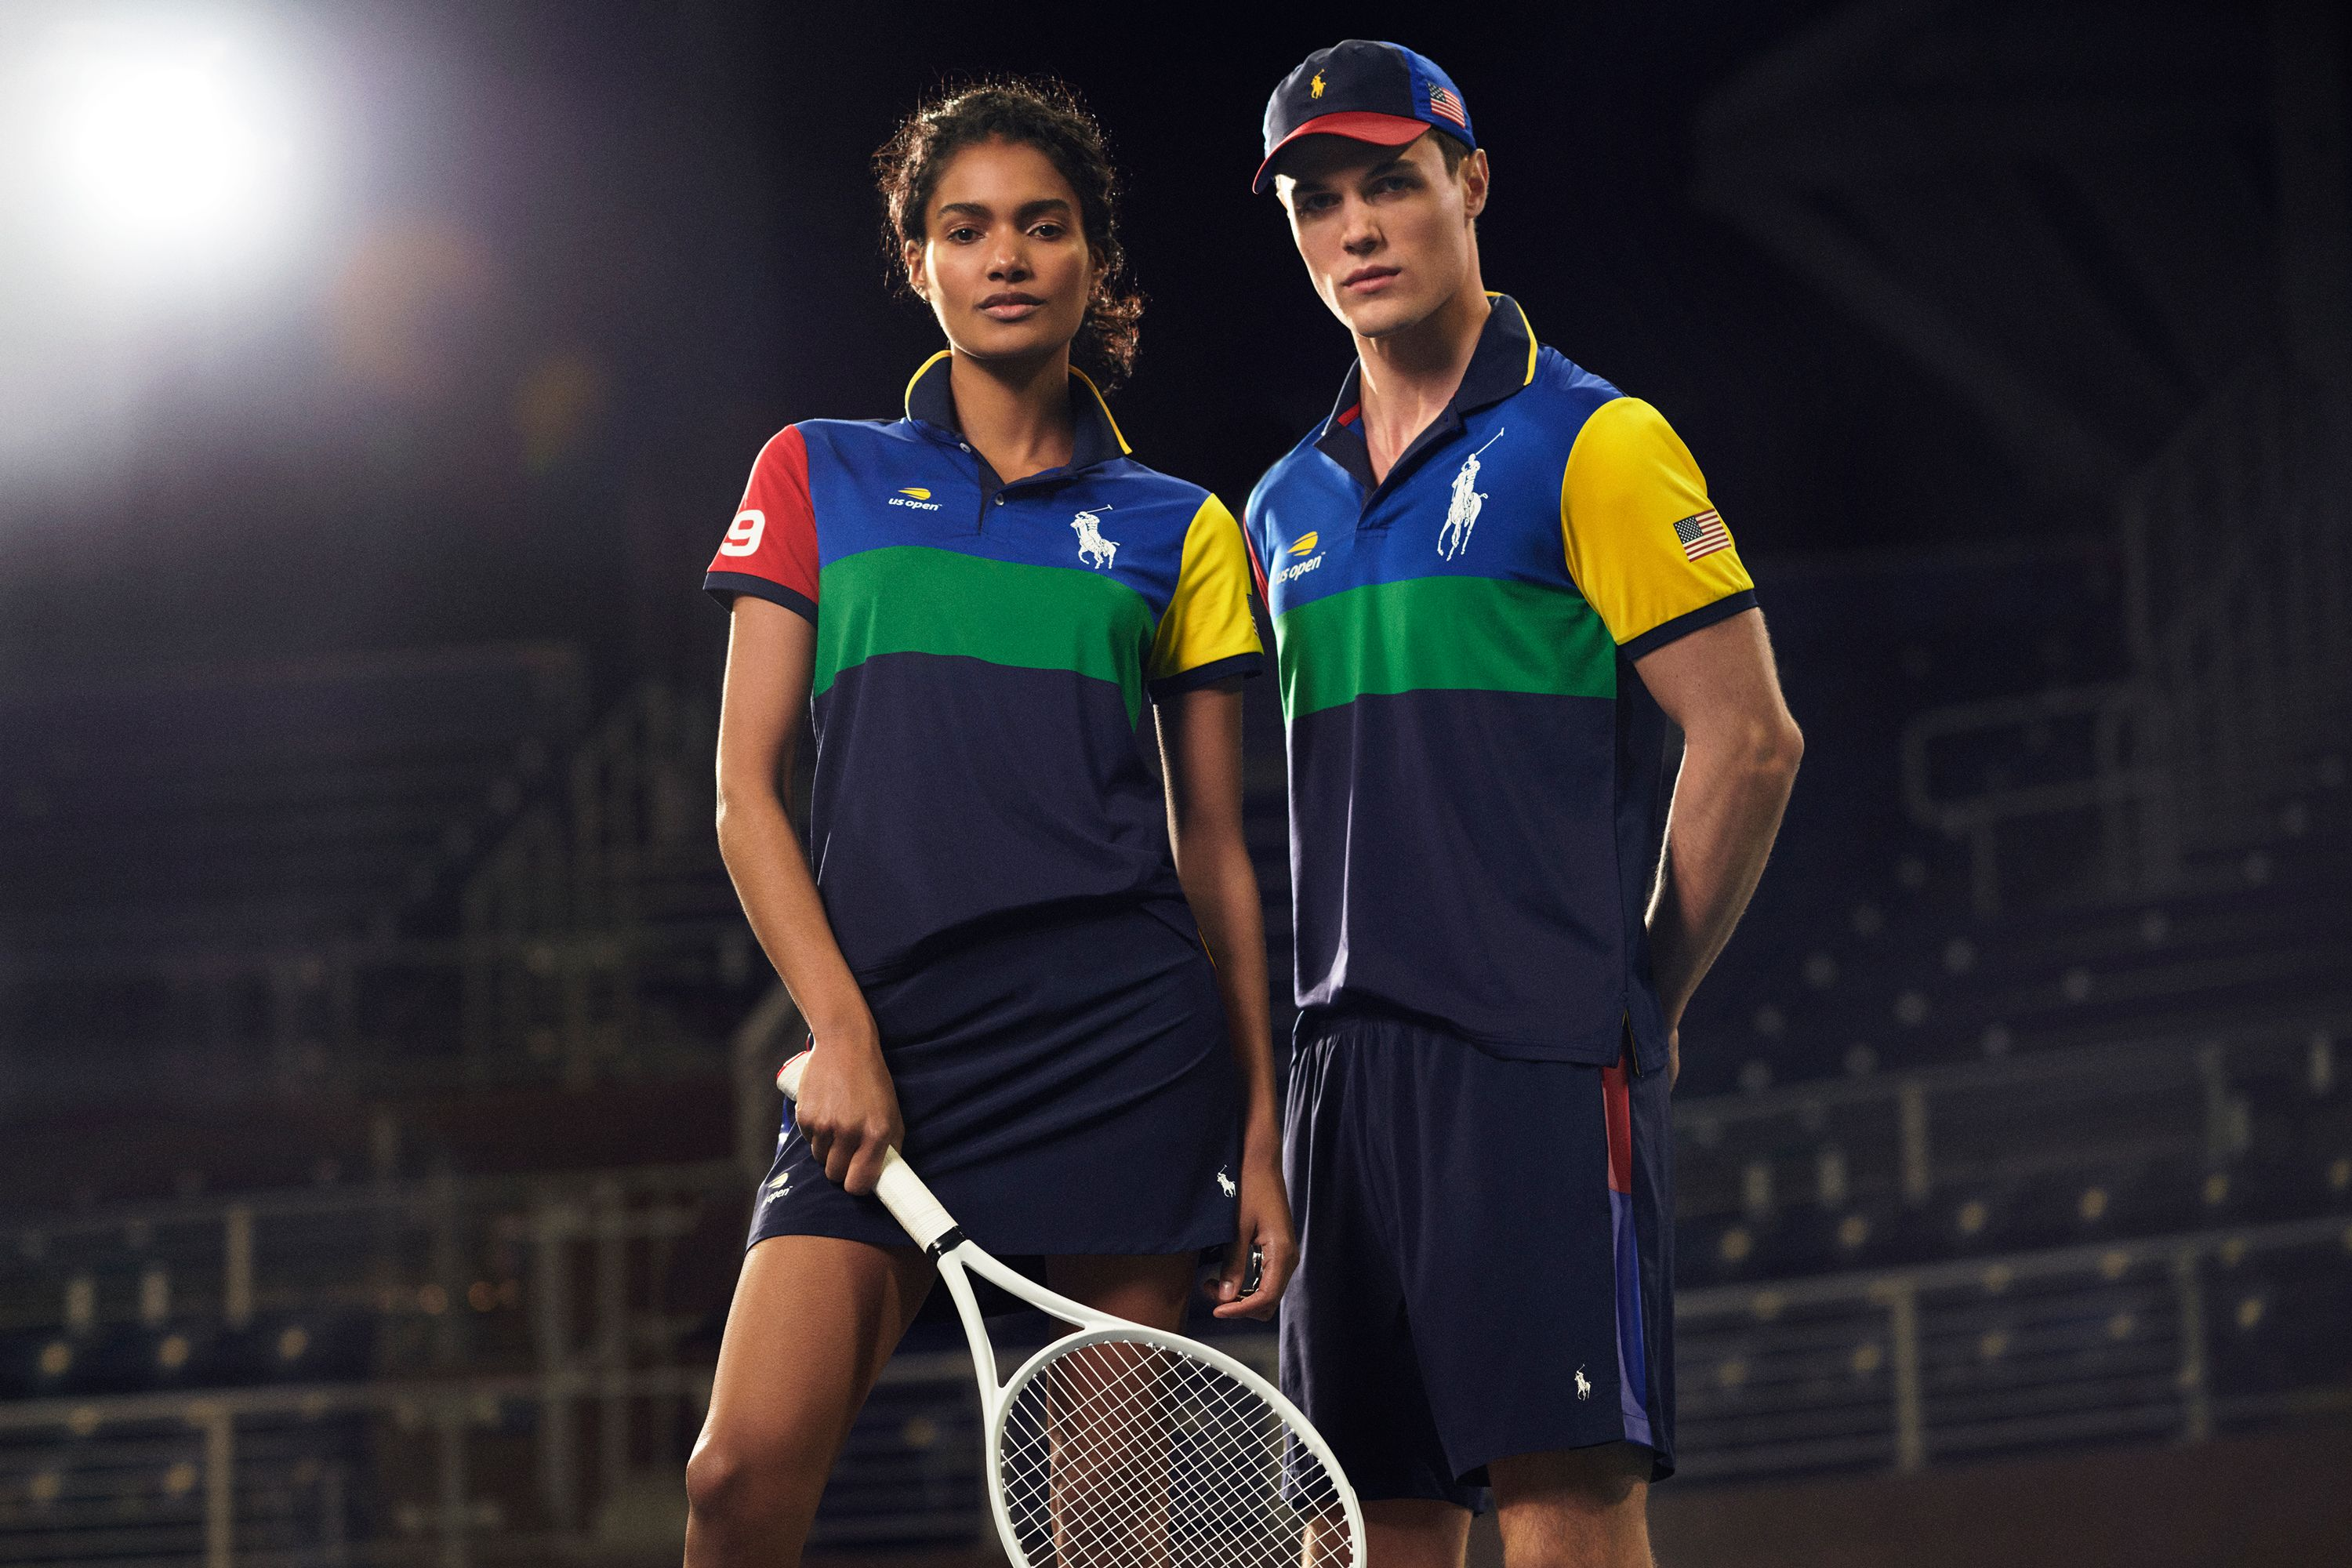 An Exclusive First Look at the 2019 US Open Ballperson Uniforms